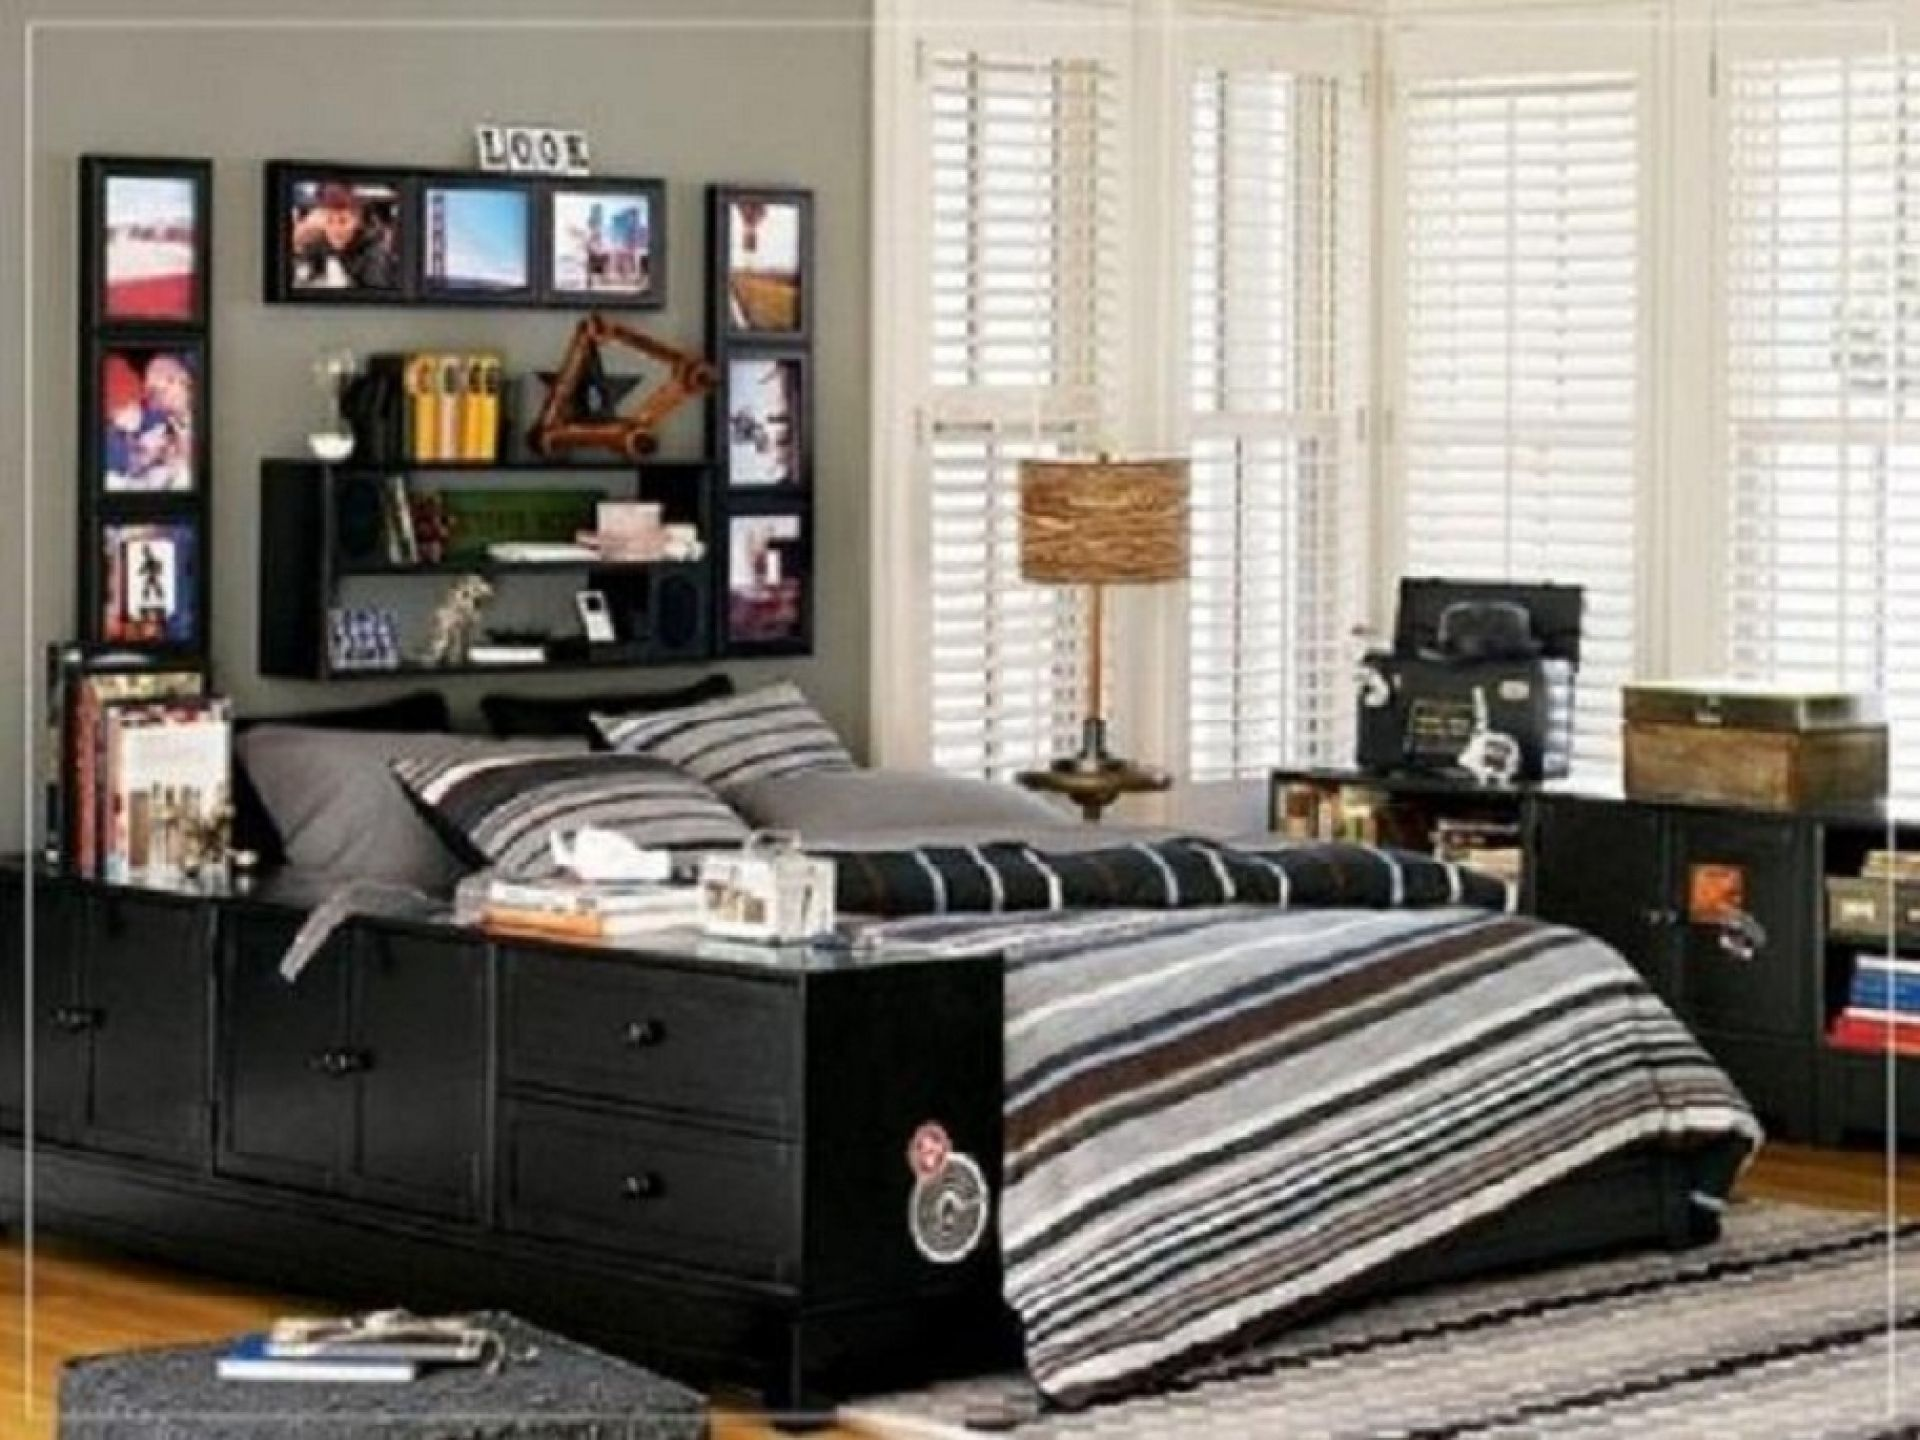 male college art major bedroom makeovergoogle searchbrandon - Guys Bedroom Decor